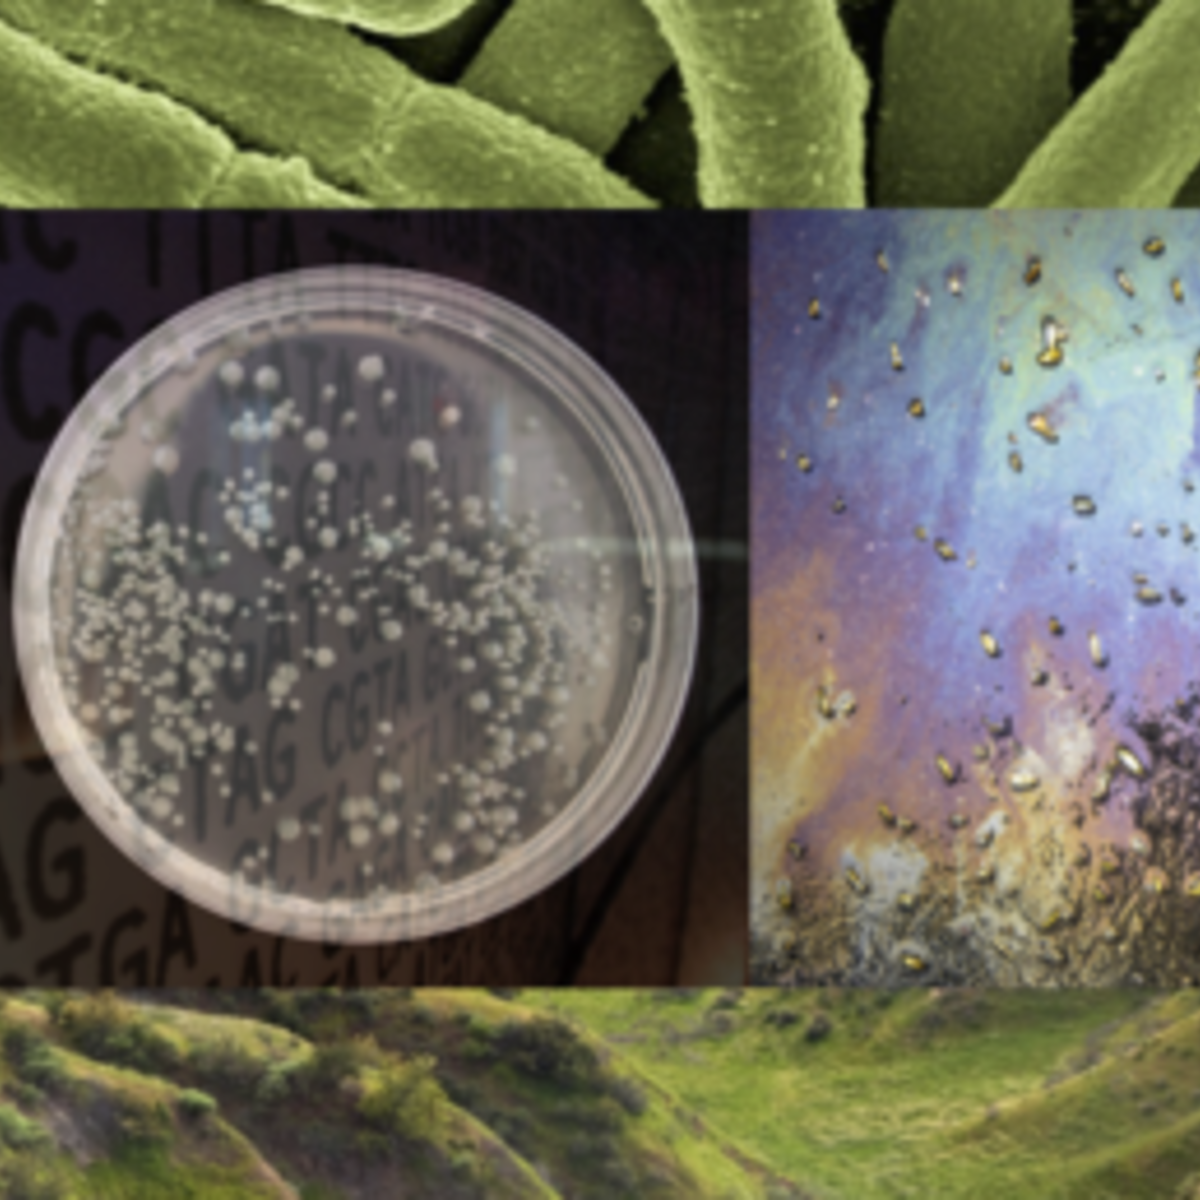 Engineering Life: Synbio, Bioethics & Public Policy course image